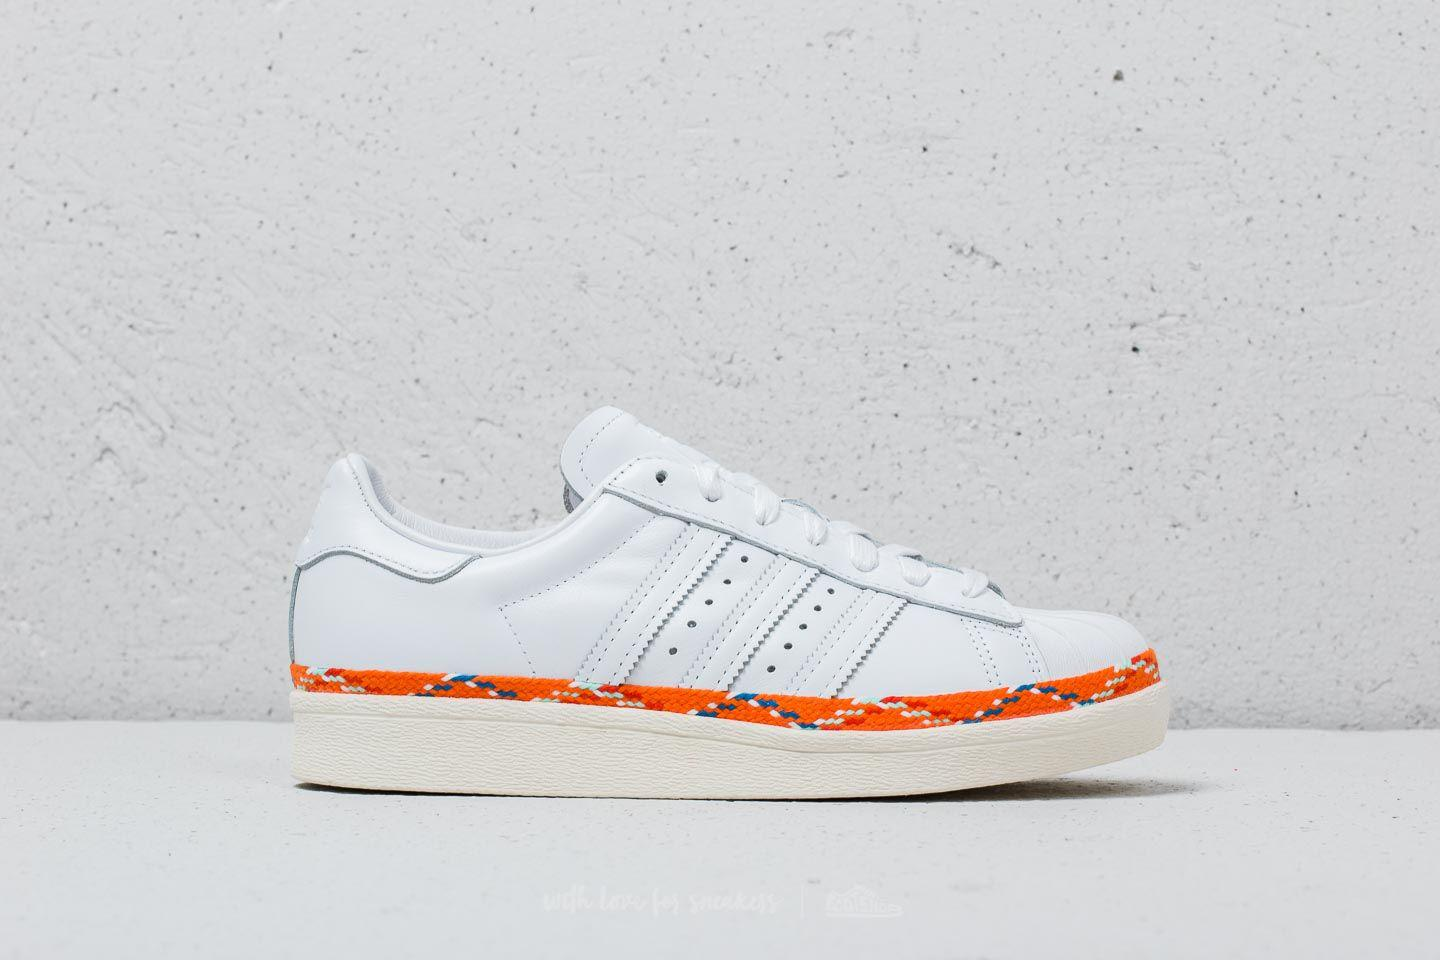 new style 225b9 f1a41 Footshop - Adidas Superstar 80s New Bold W Ftw White Ftw White Off White.  View fullscreen